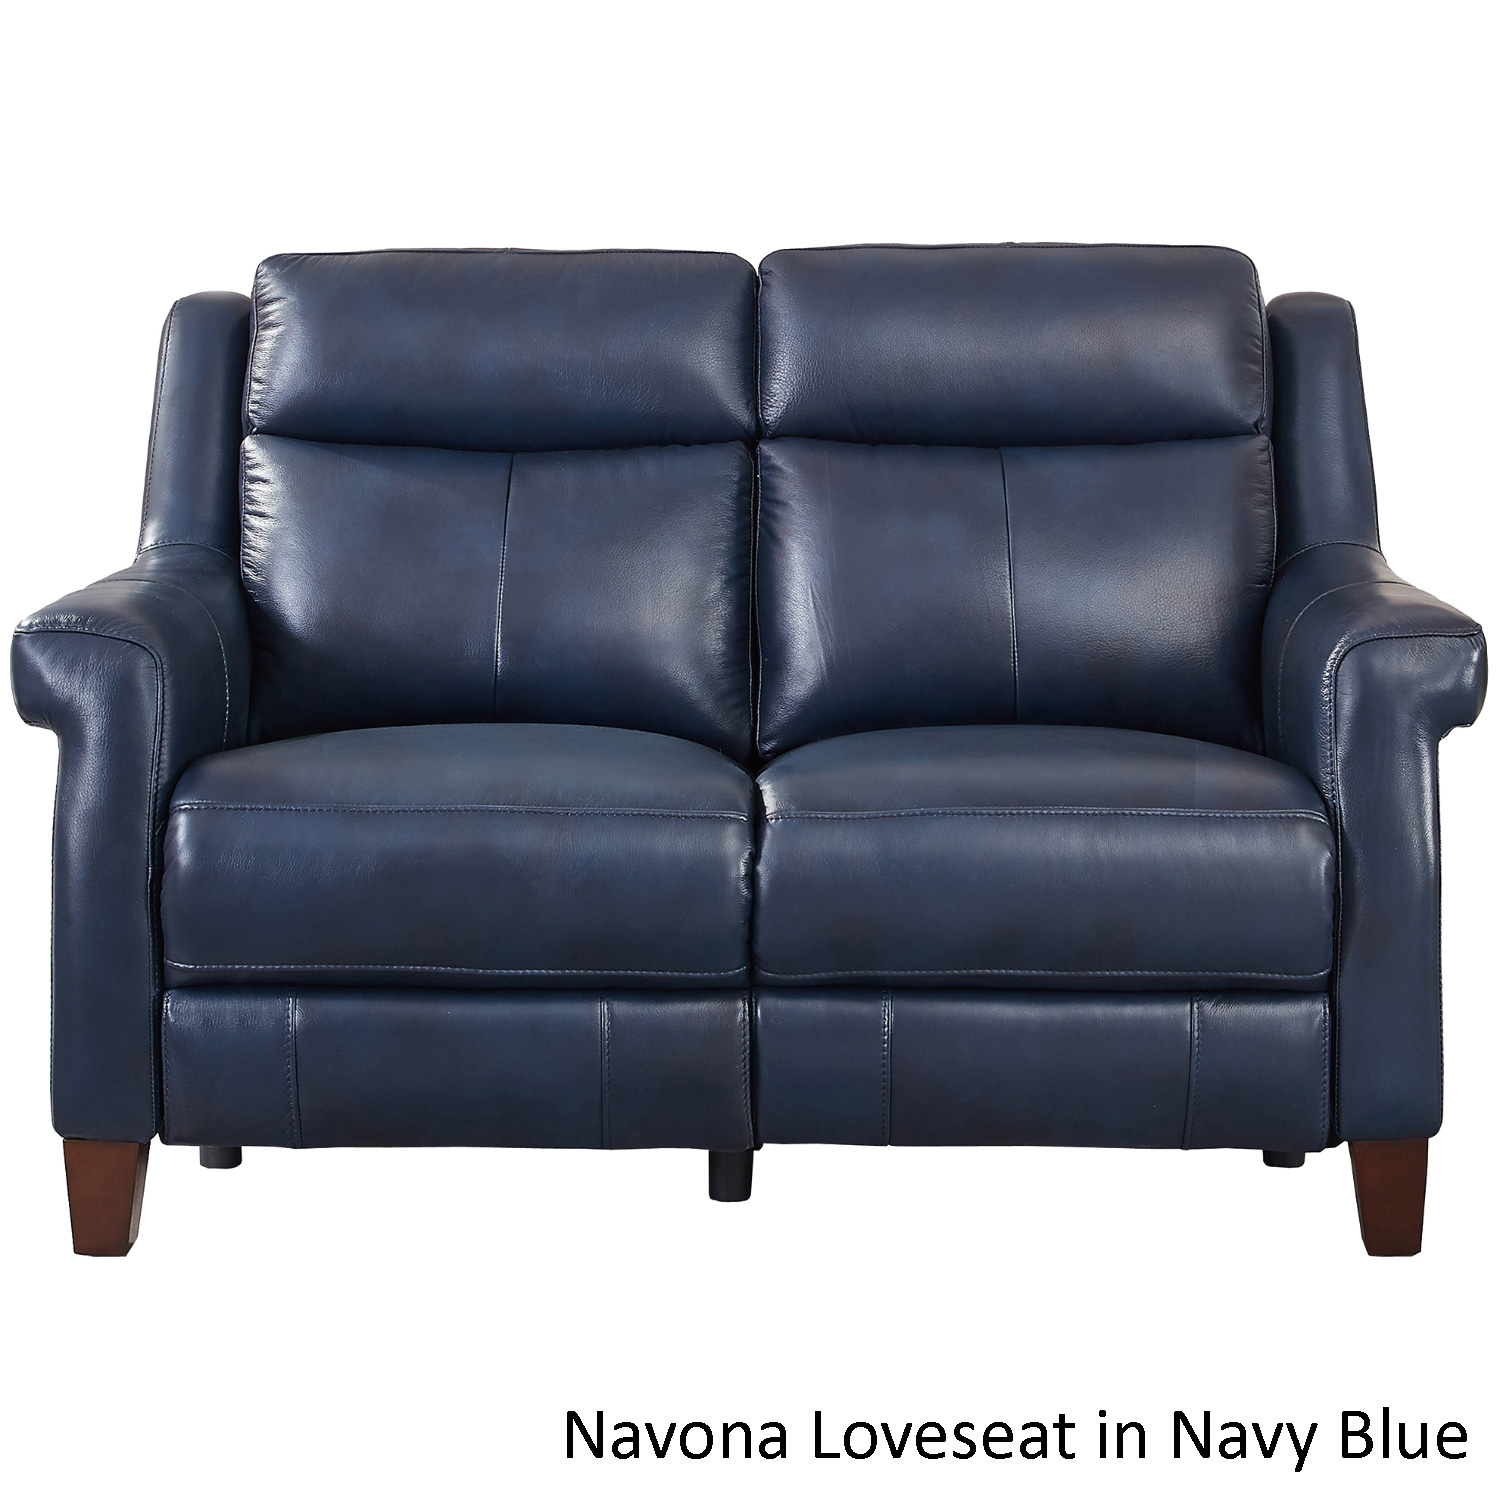 Hydeline Navona Lv Navona Leather Power Reclining Loveseat Shown In Navy Blue Customizable Colors